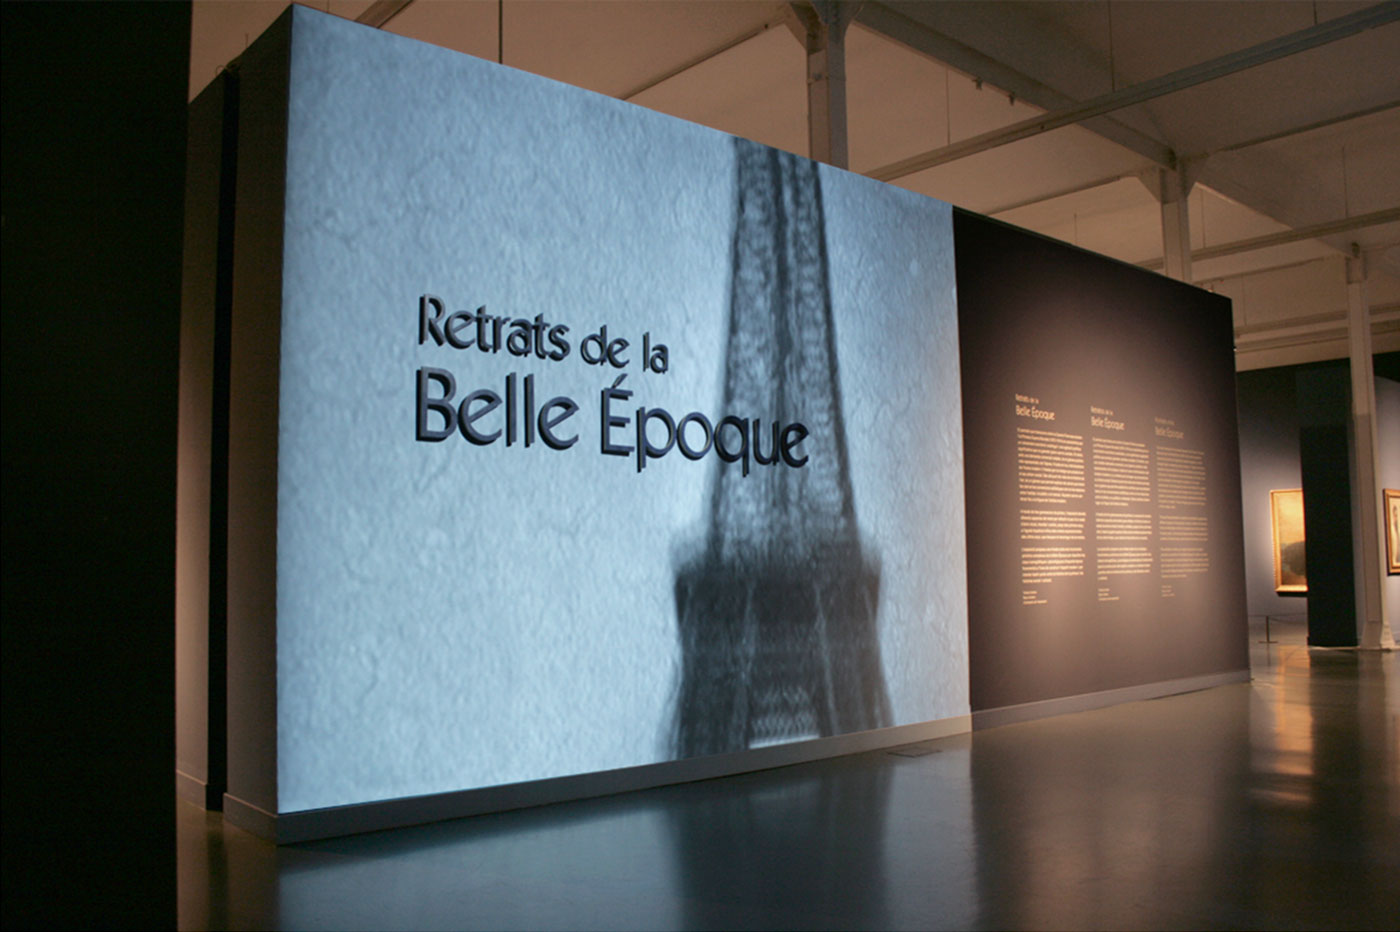 retrats-de-la-belle-epoque-expo-caixaforum-barcelona